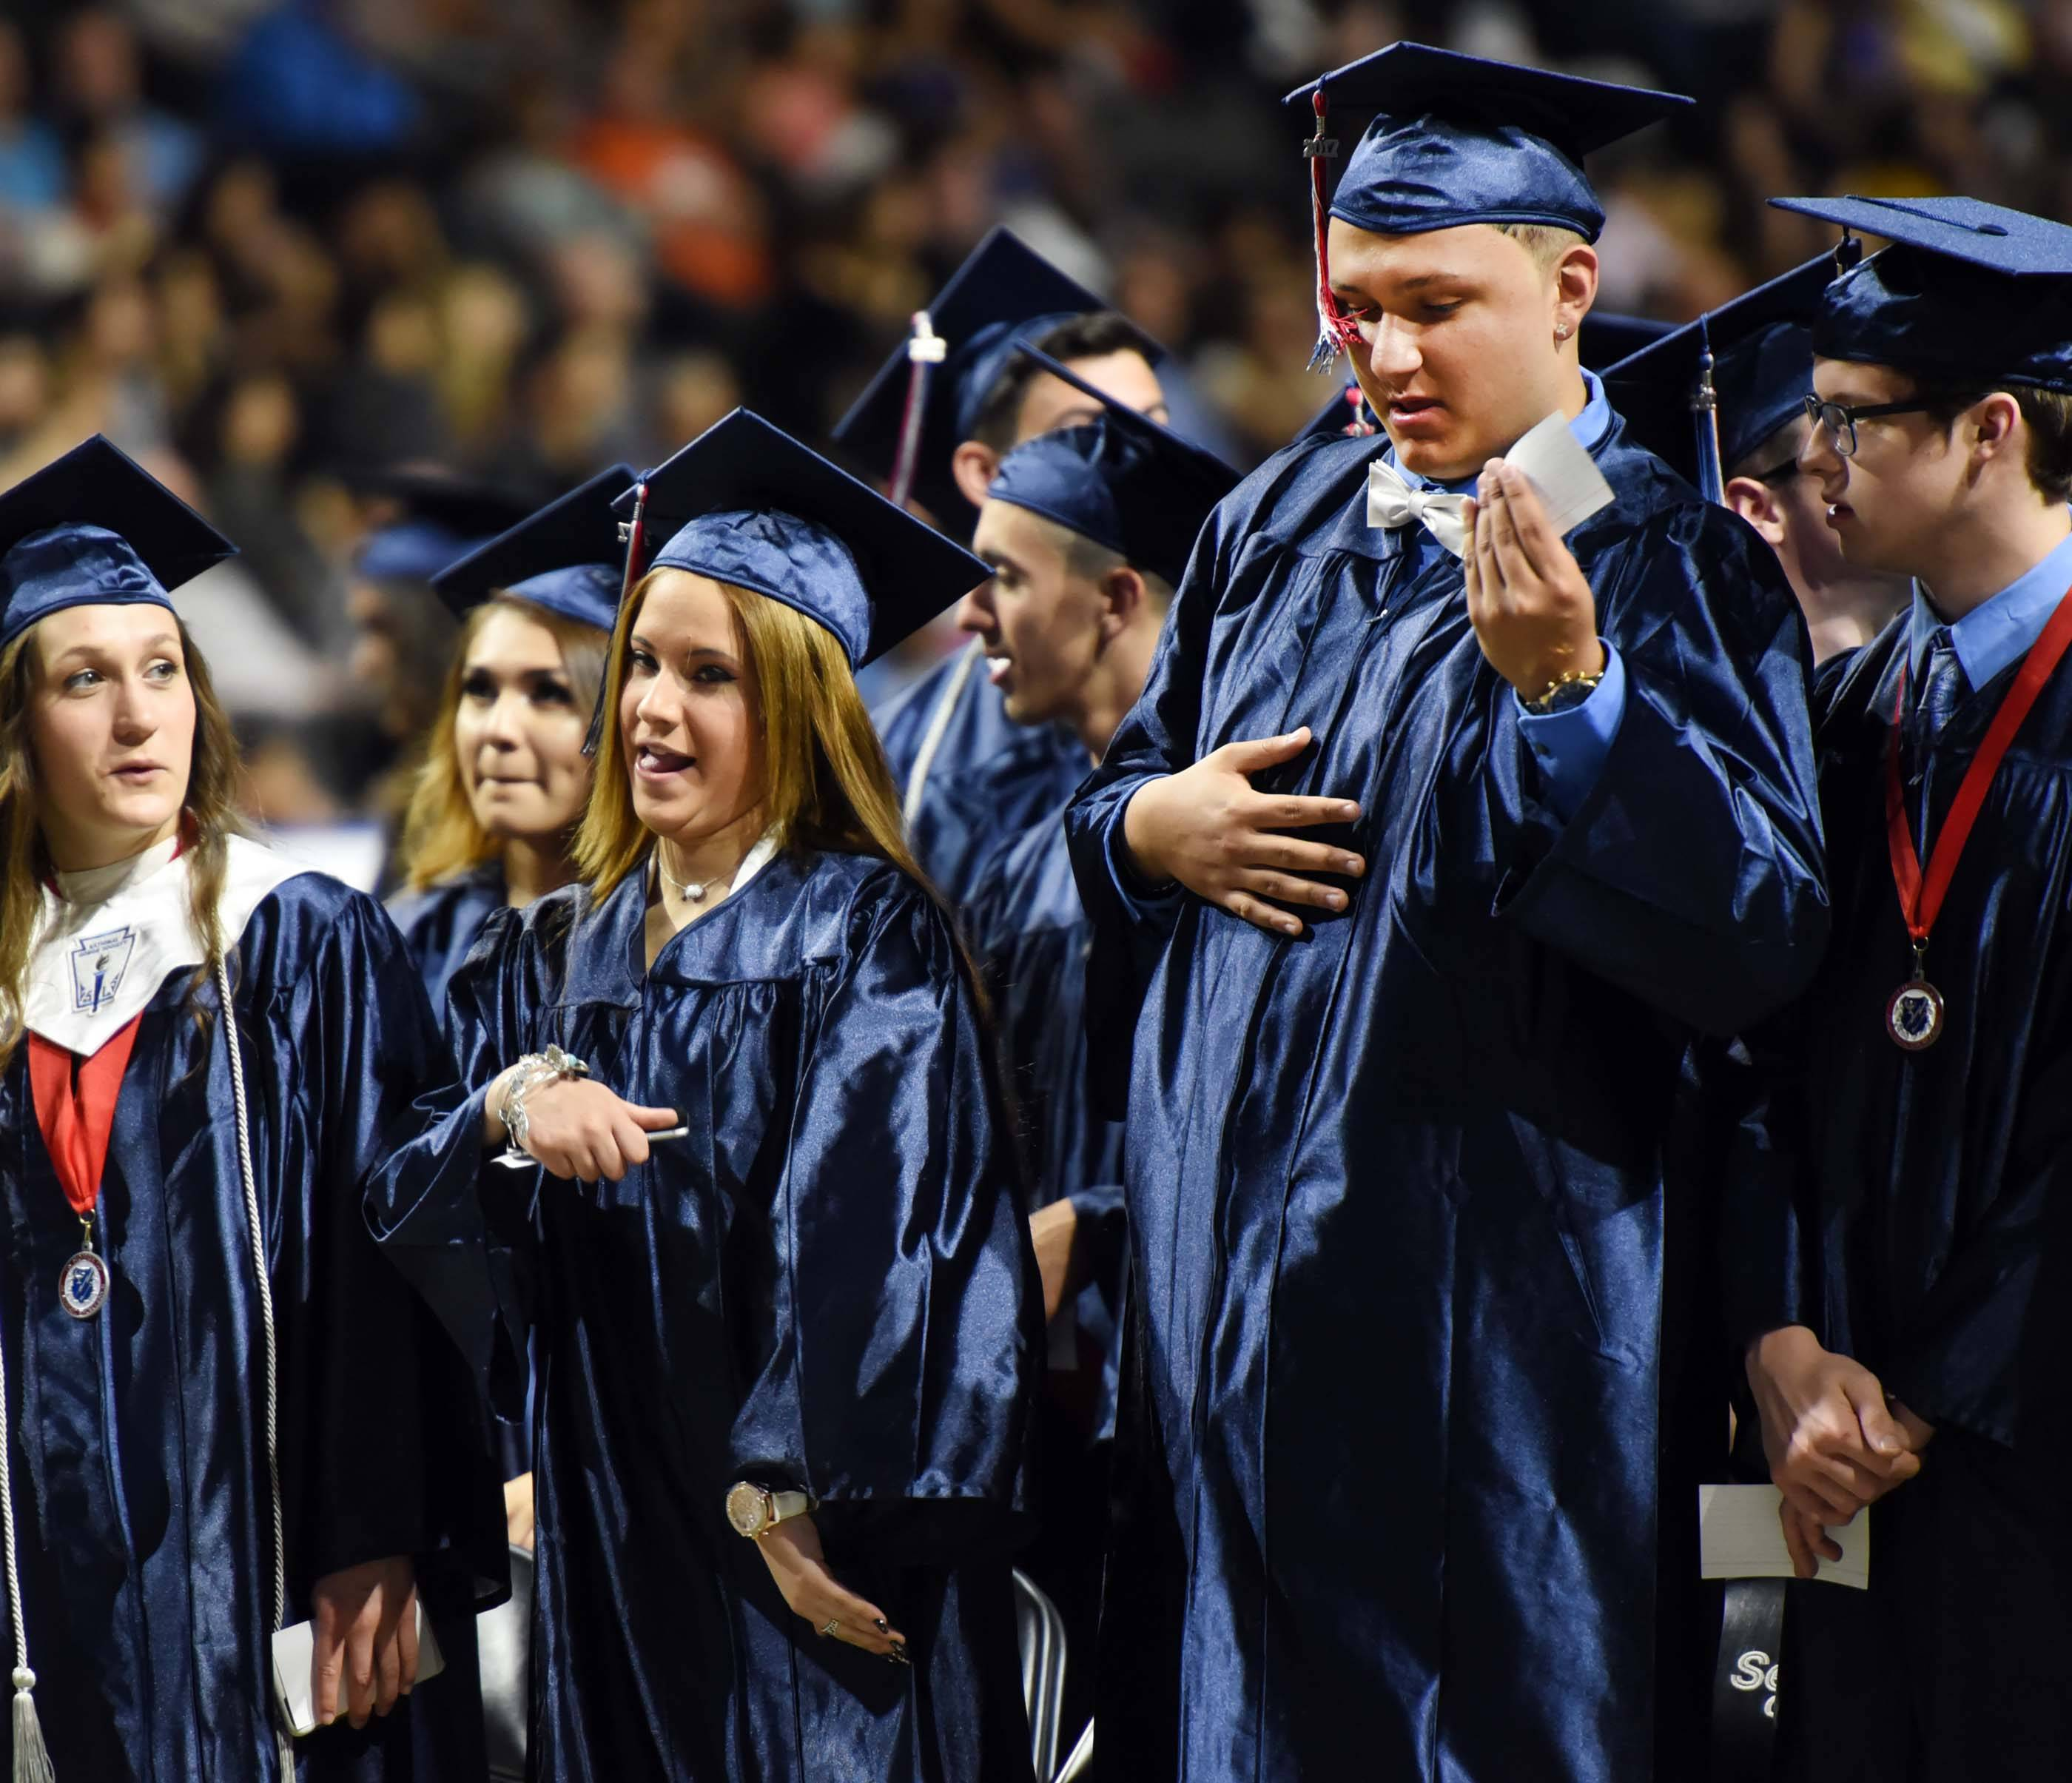 Graduates Amanda Jannet Aldarondo and Joevani M. Alcantar do an impromptu dance at the South Elgin High School Class of 2017 commencement at the Sears Centre in Hoffman Estates Saturday.